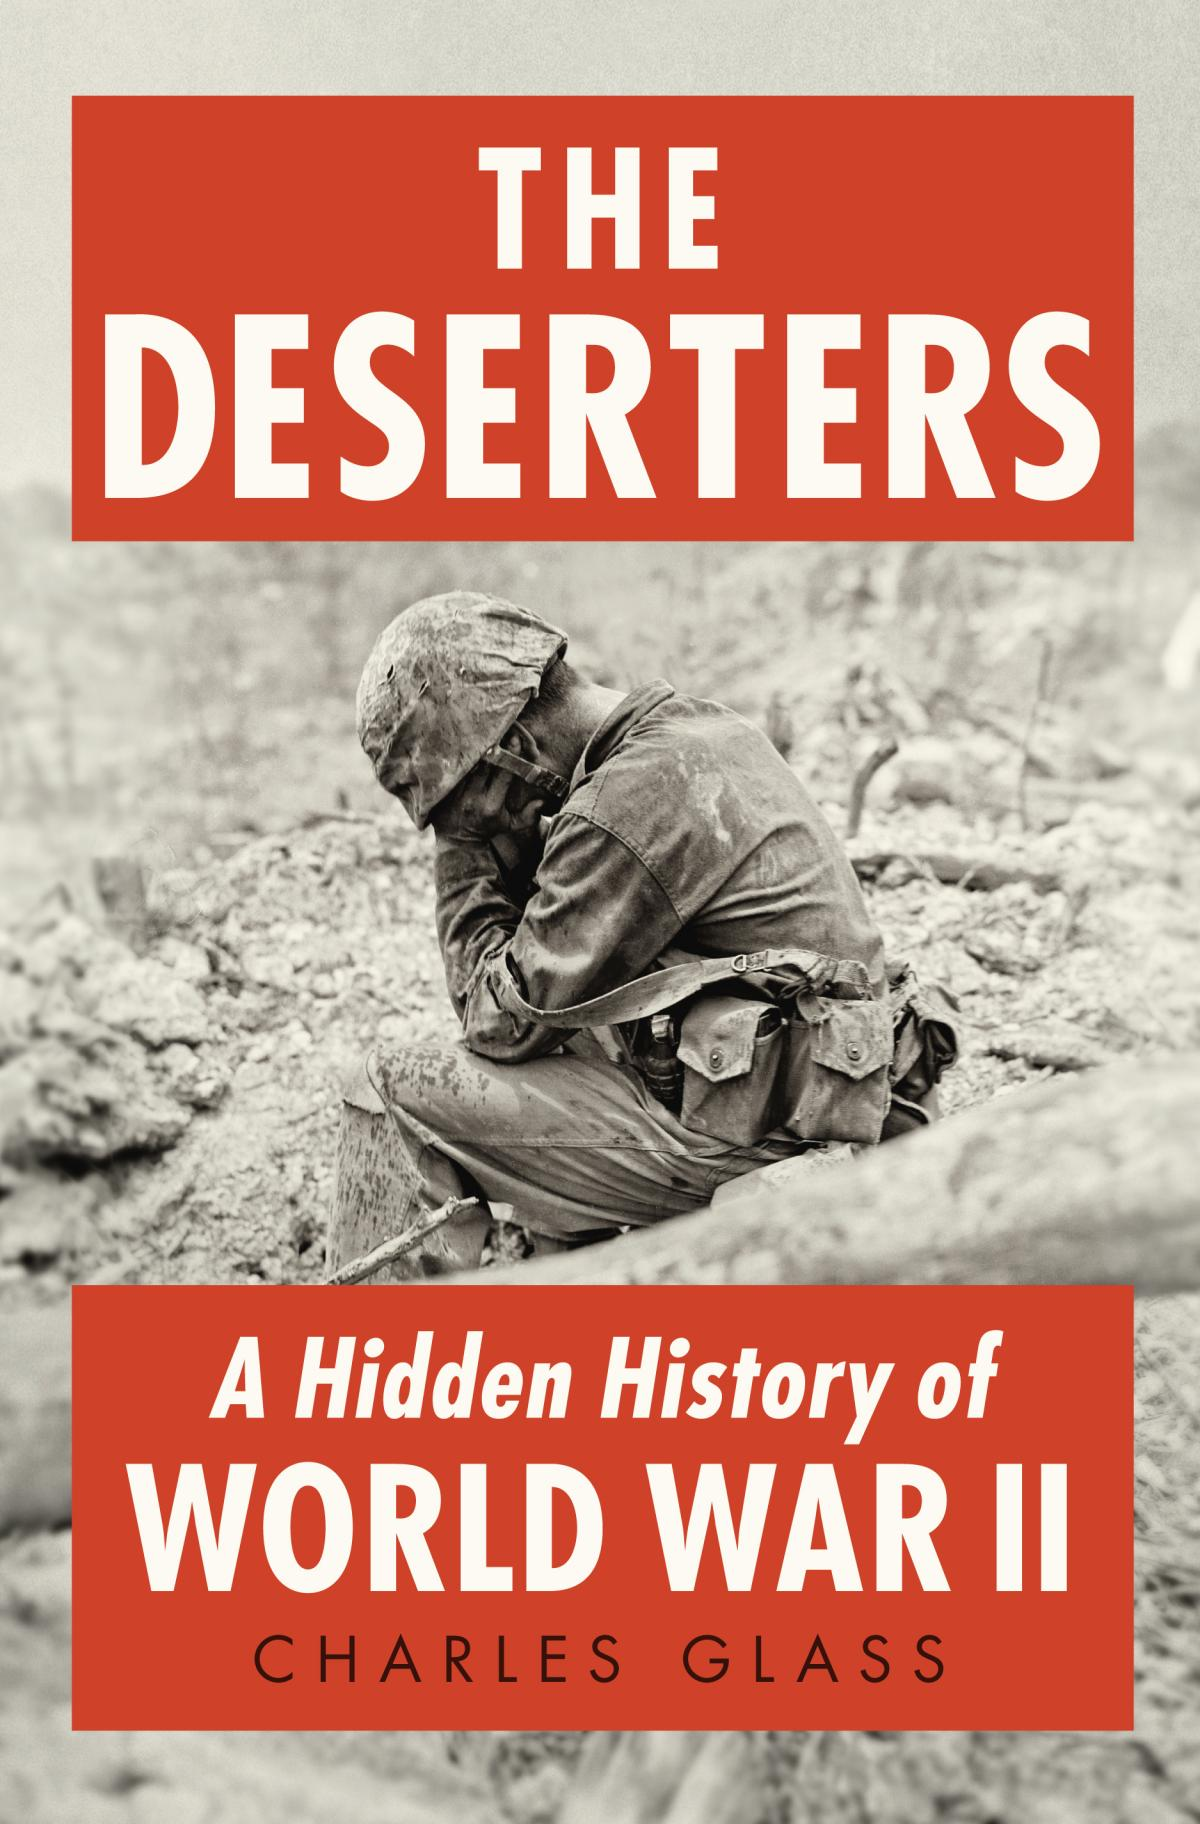 The Deserters is Charles Glass' second book relating to World War II. His last book, Americans in Paris, told the story of the U.S. citizens who remained in the French capital after the 1940 German invasion.